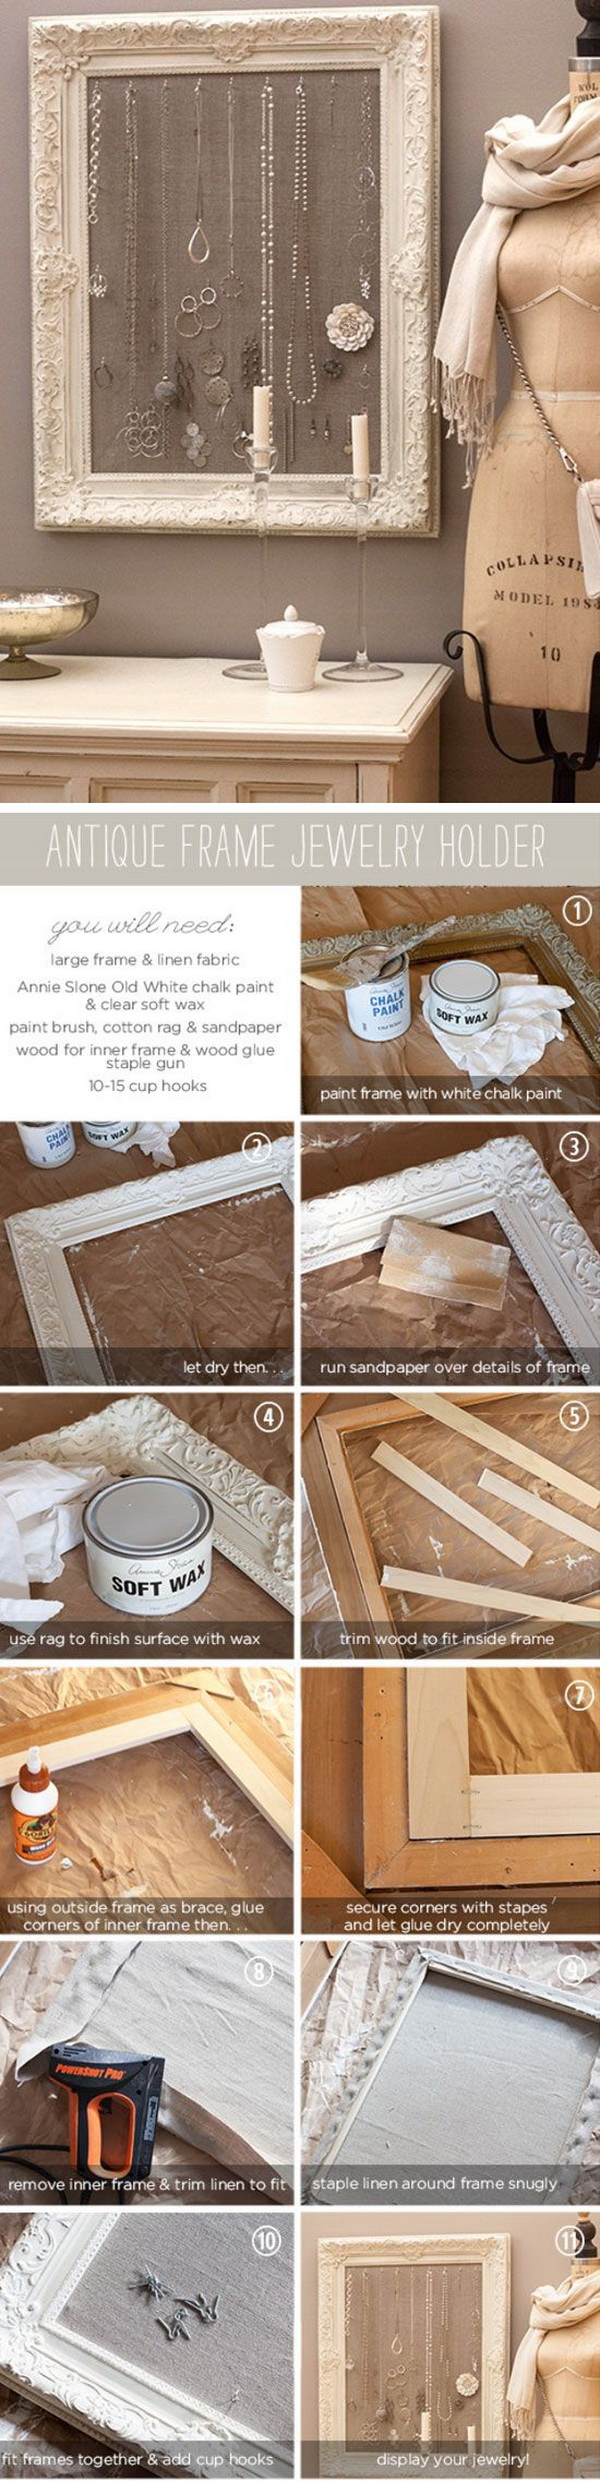 DIY Antique Frame Jewelry Holder. This antique shabby chic frame jewelry organizer can be wall mounted and once the jewellery is on it it's like an ever changing art work!